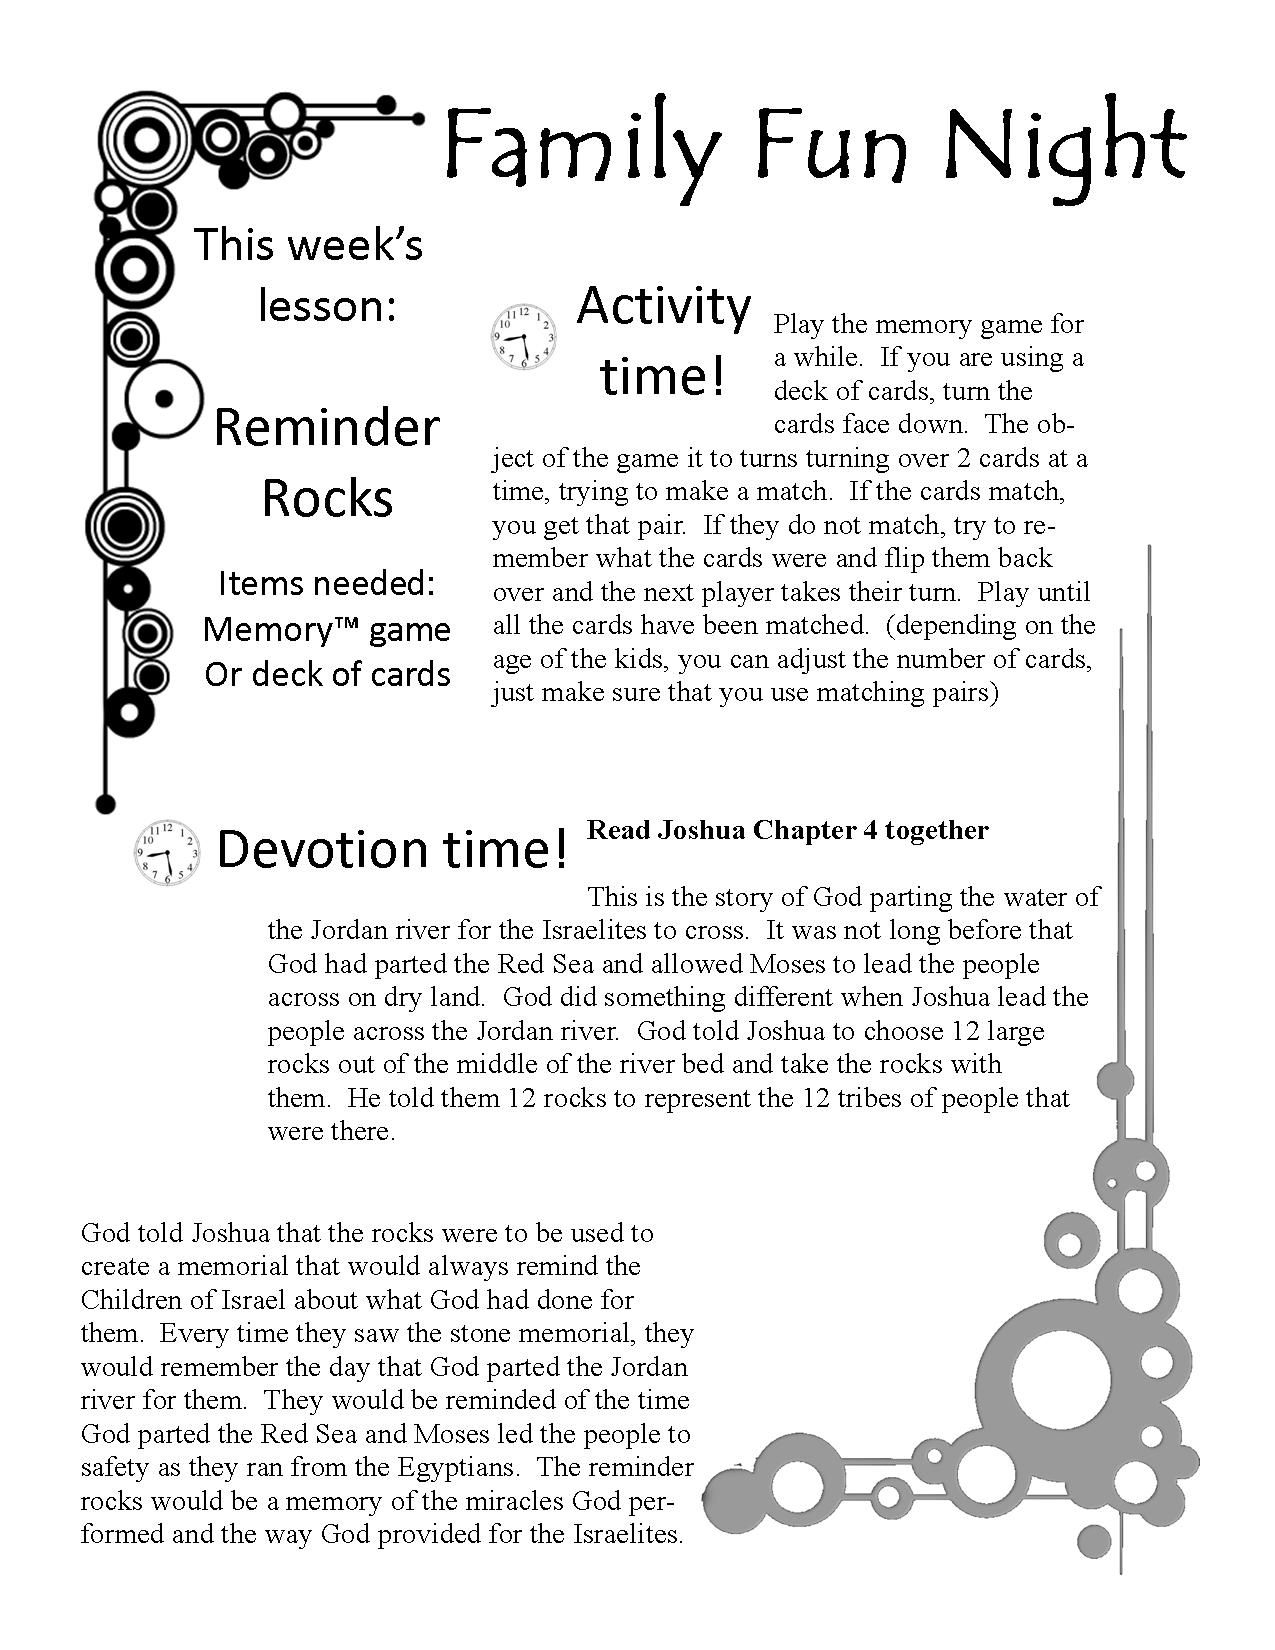 Free Family Fun Devotion Time. Printable Game, Lesson, Activity - Free Printable Sunday School Lessons For Teens